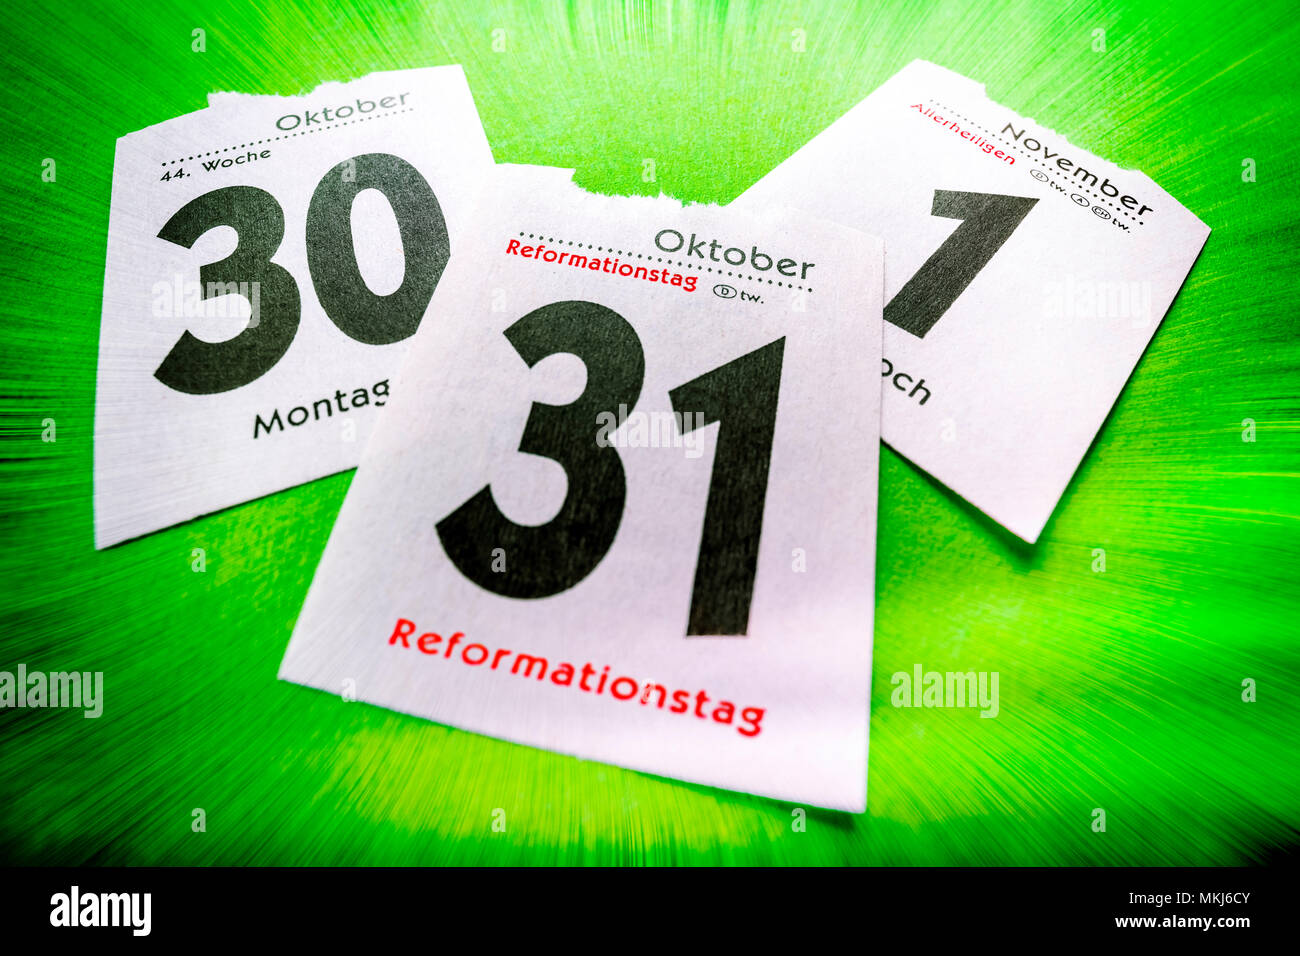 Calendar Sheet 31. October, Reformation Day, Kalenderblatt 31. Oktober, Reformationstag - Stock Image